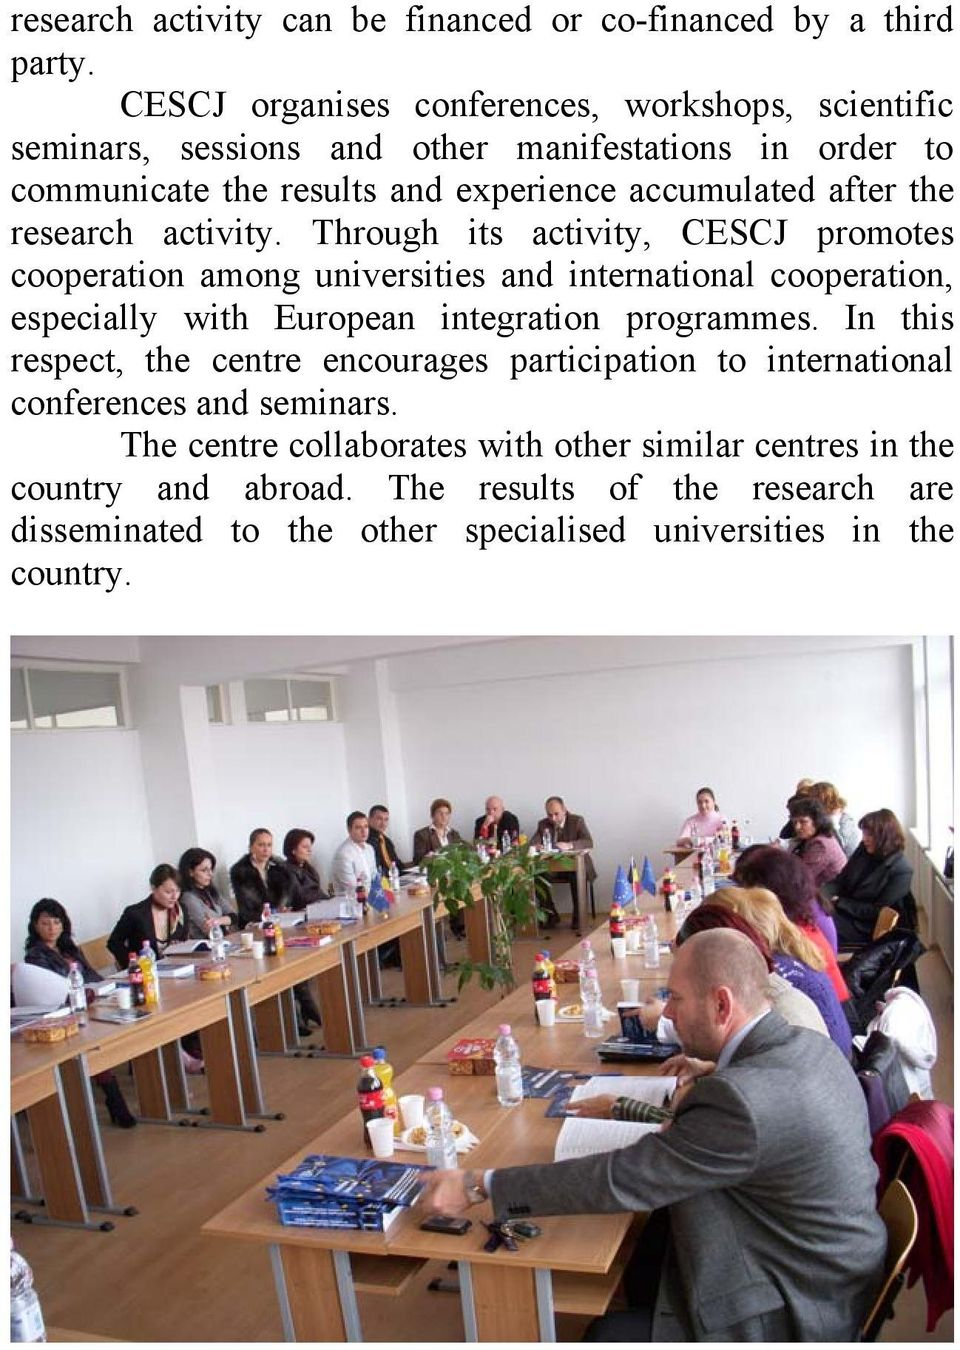 research activity. Through its activity, CESCJ promotes cooperation among universities and international cooperation, especially with European integration programmes.